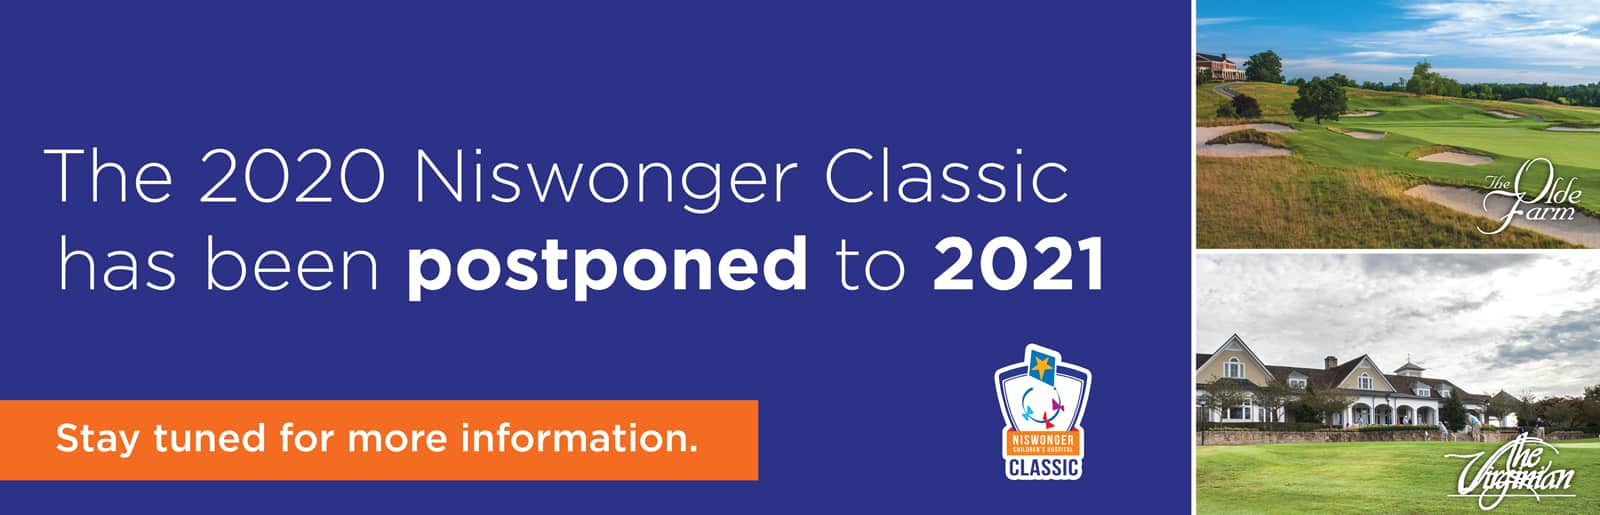 The 2020 Niswonger Classic has been postponed to 2021